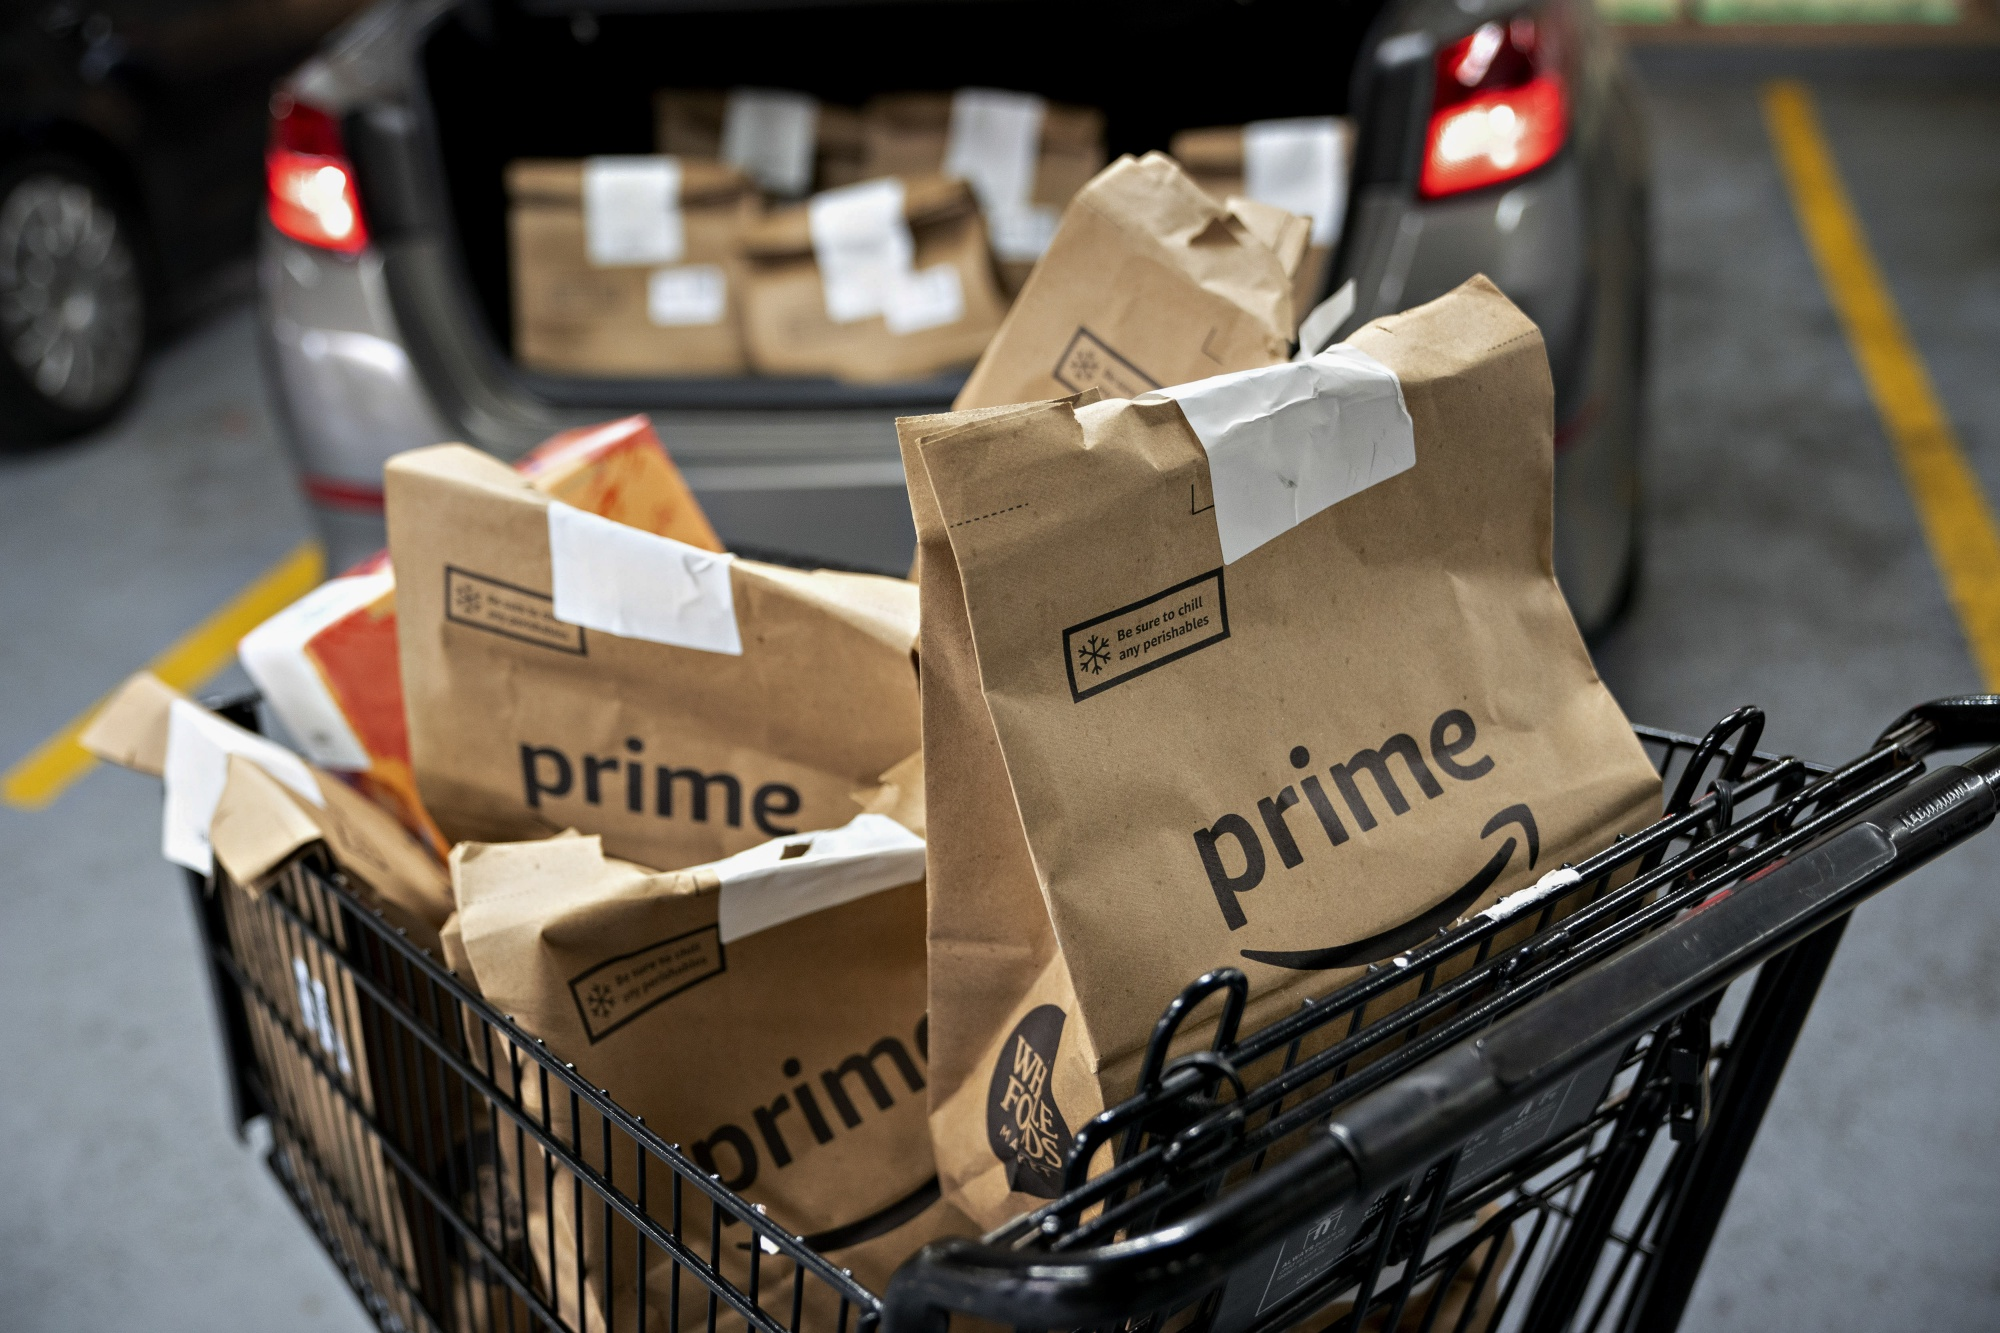 Amazon.com Inc. Prime Deliveries As Workers Demand Better Pay